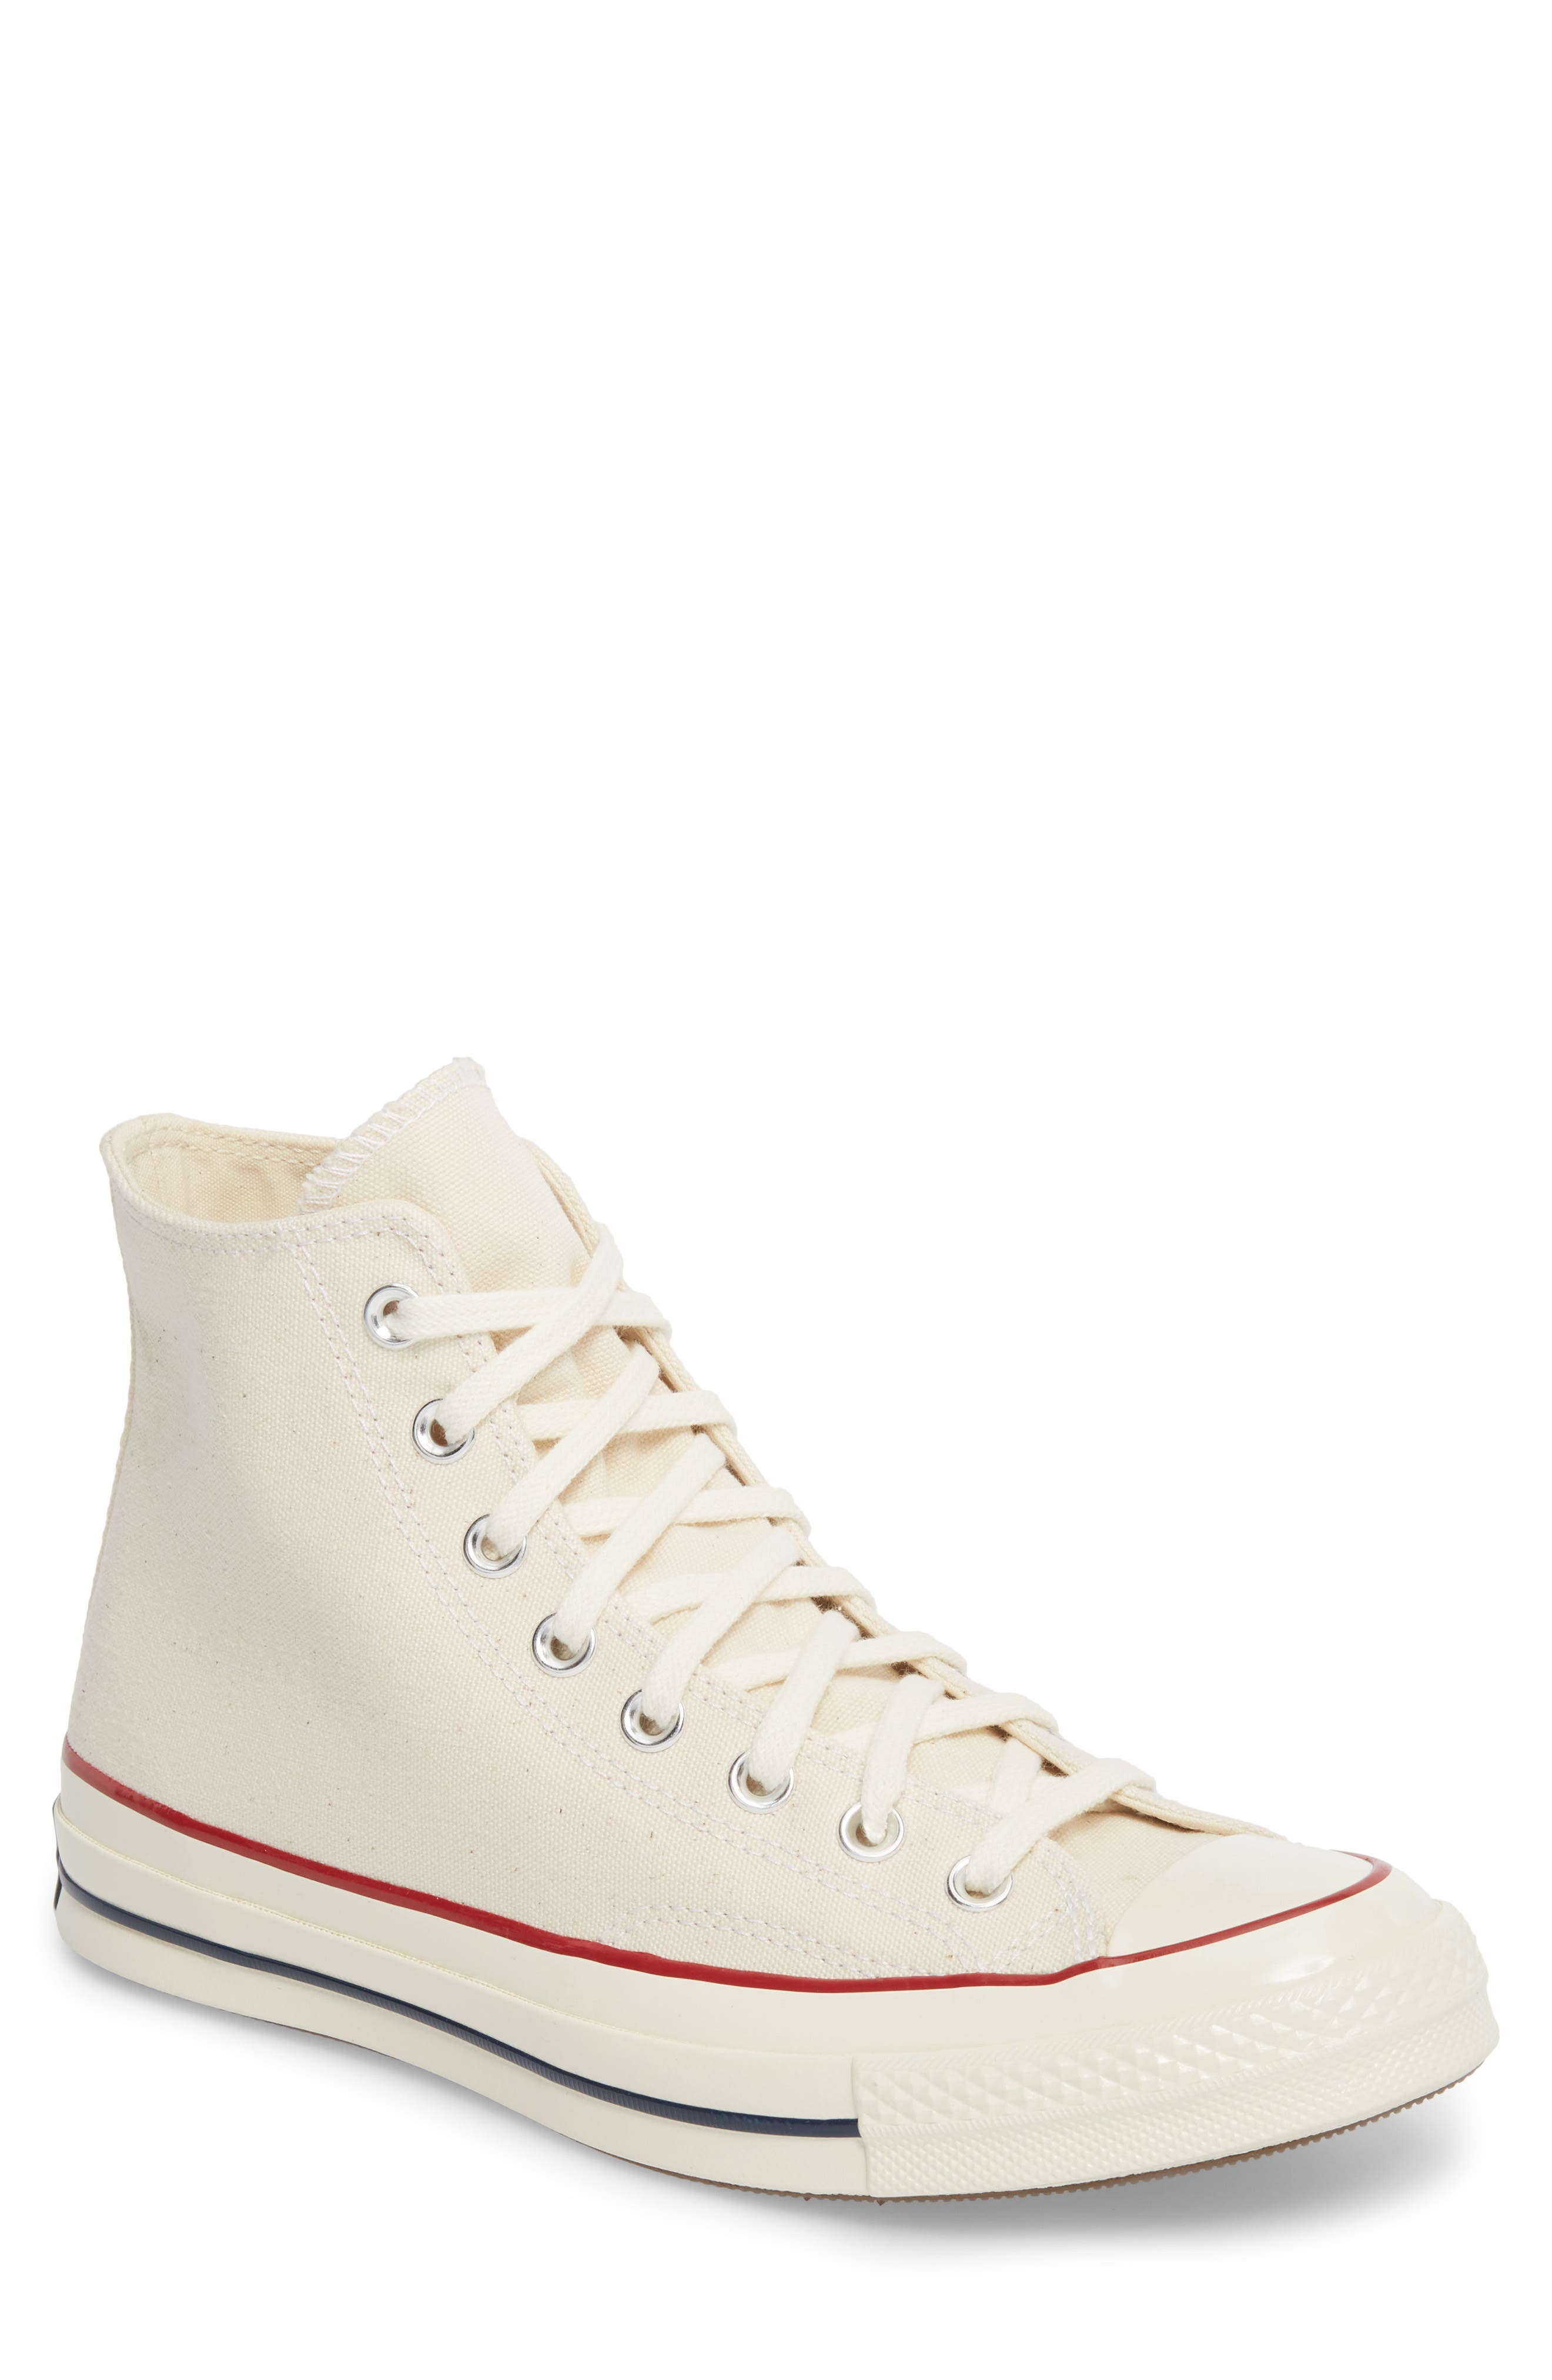 Chuck Taylor<sup>®</sup> All Star<sup>®</sup> 70 High Top Sneaker,                         Main,                         color, Parchment